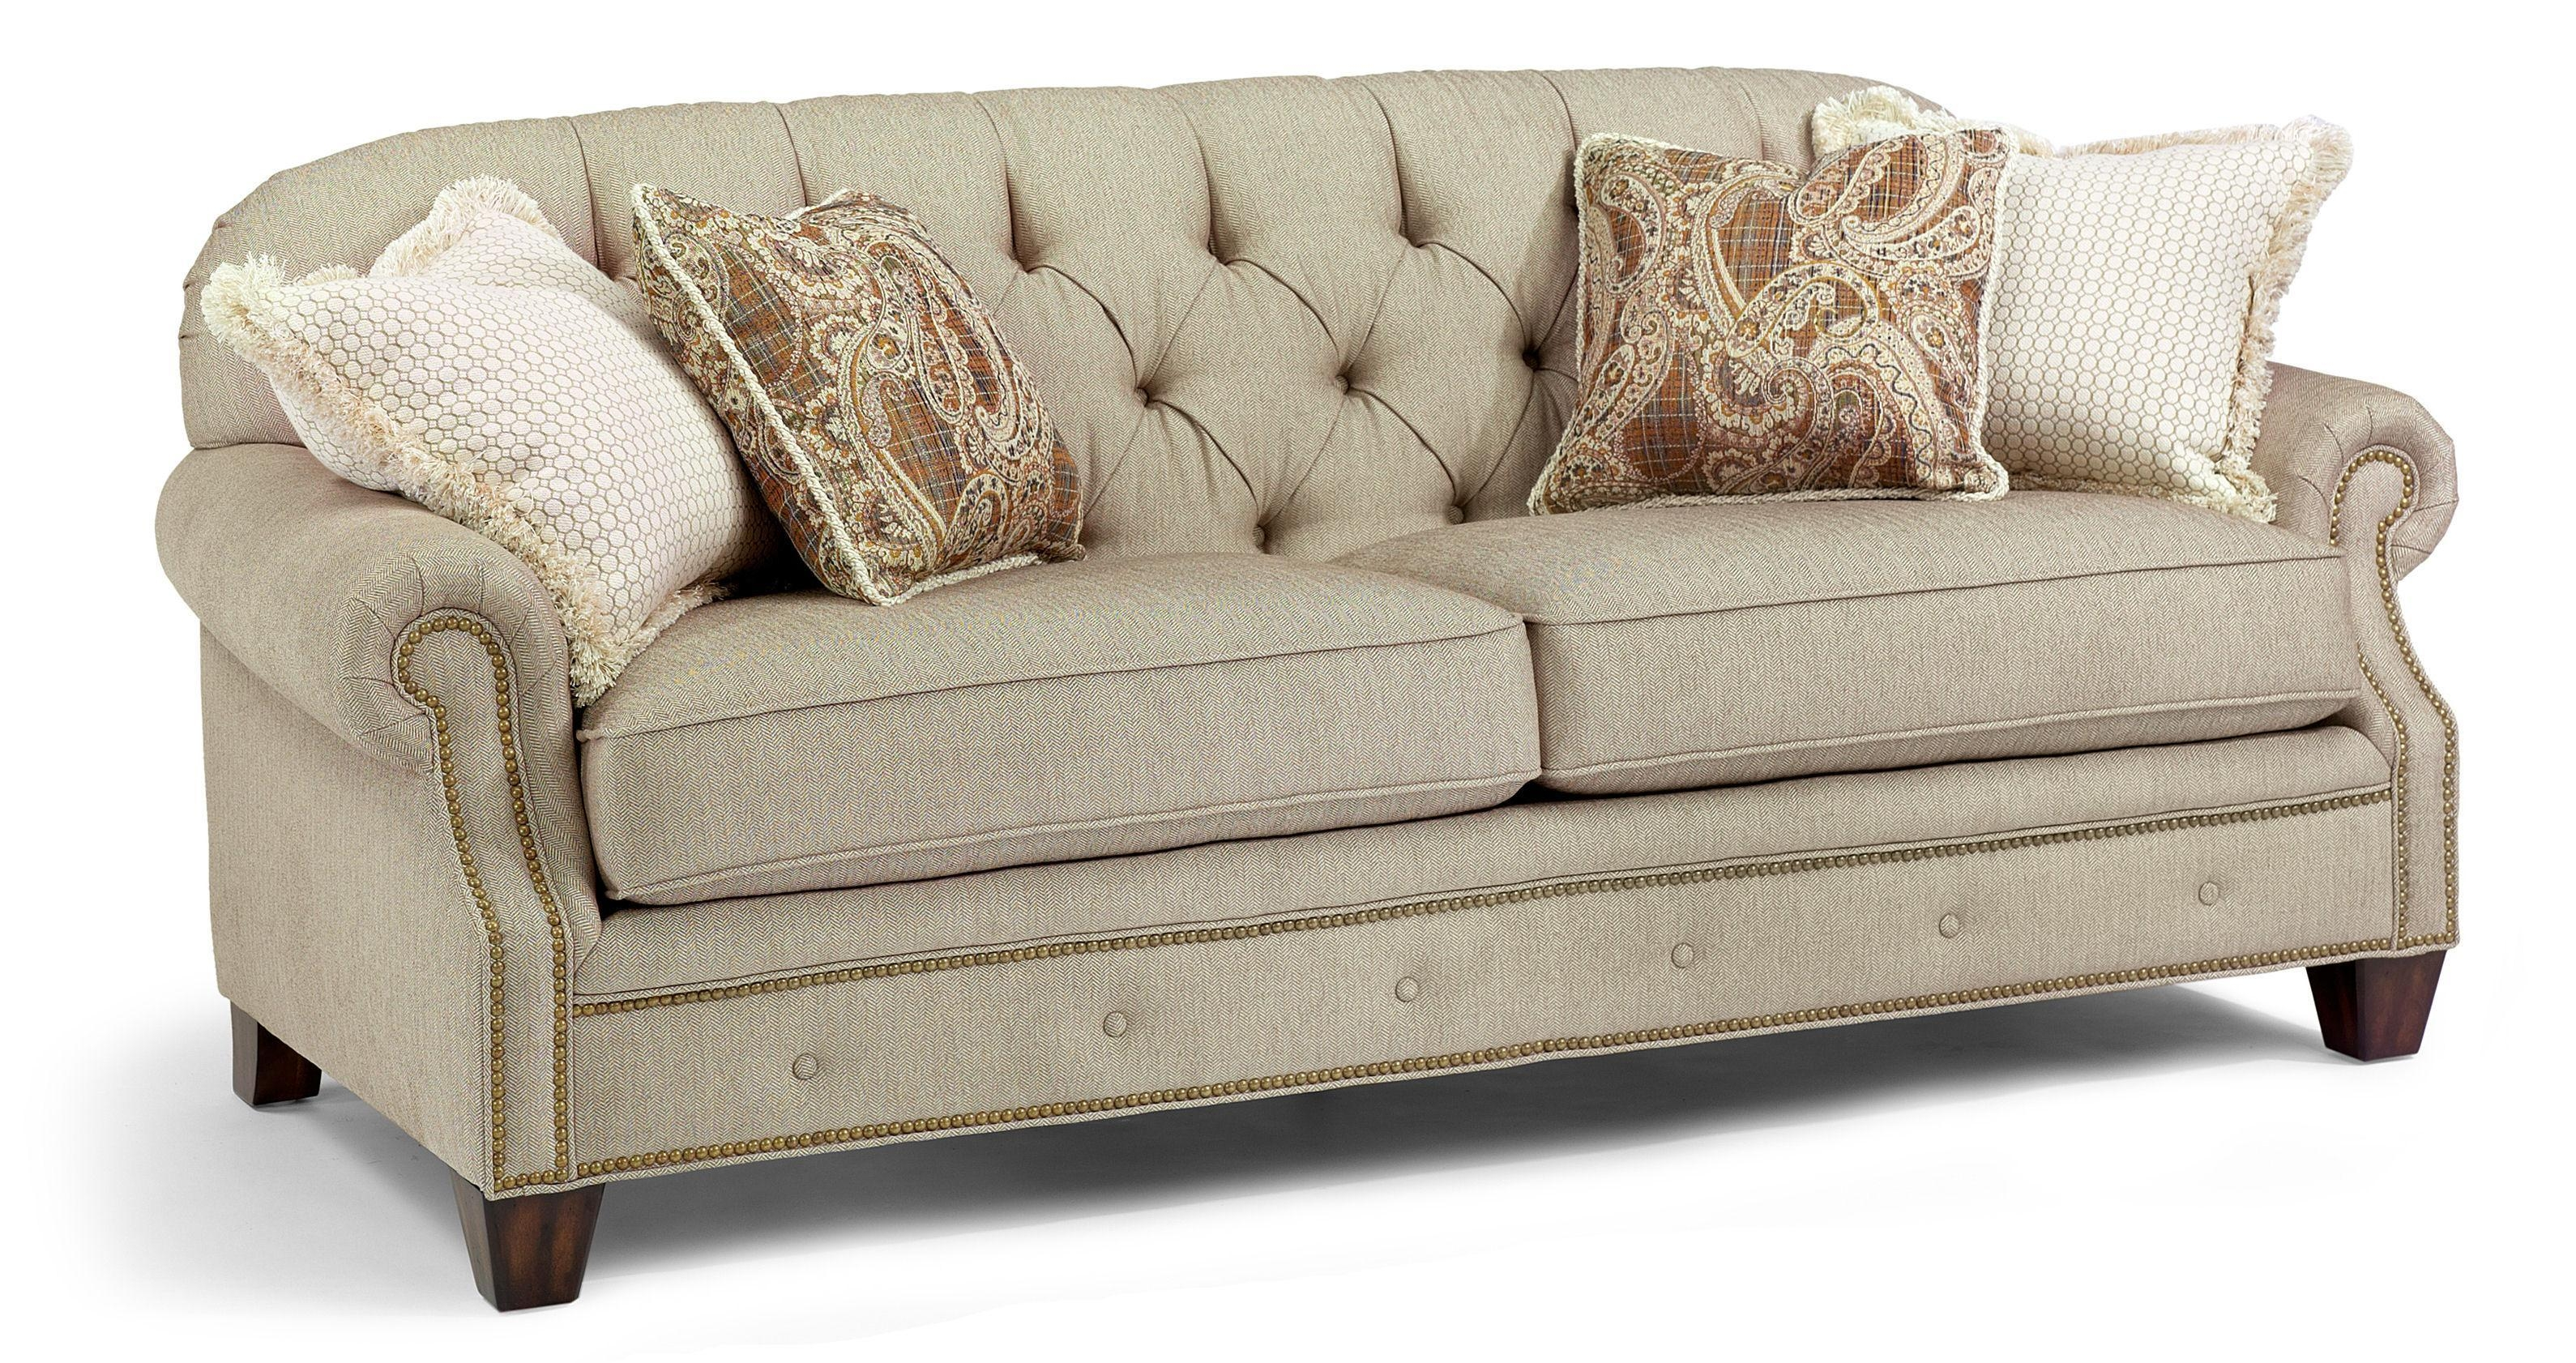 Alan White Sofa | Sofa Gallery | Kengire With Alan White Sofas (View 9 of 20)